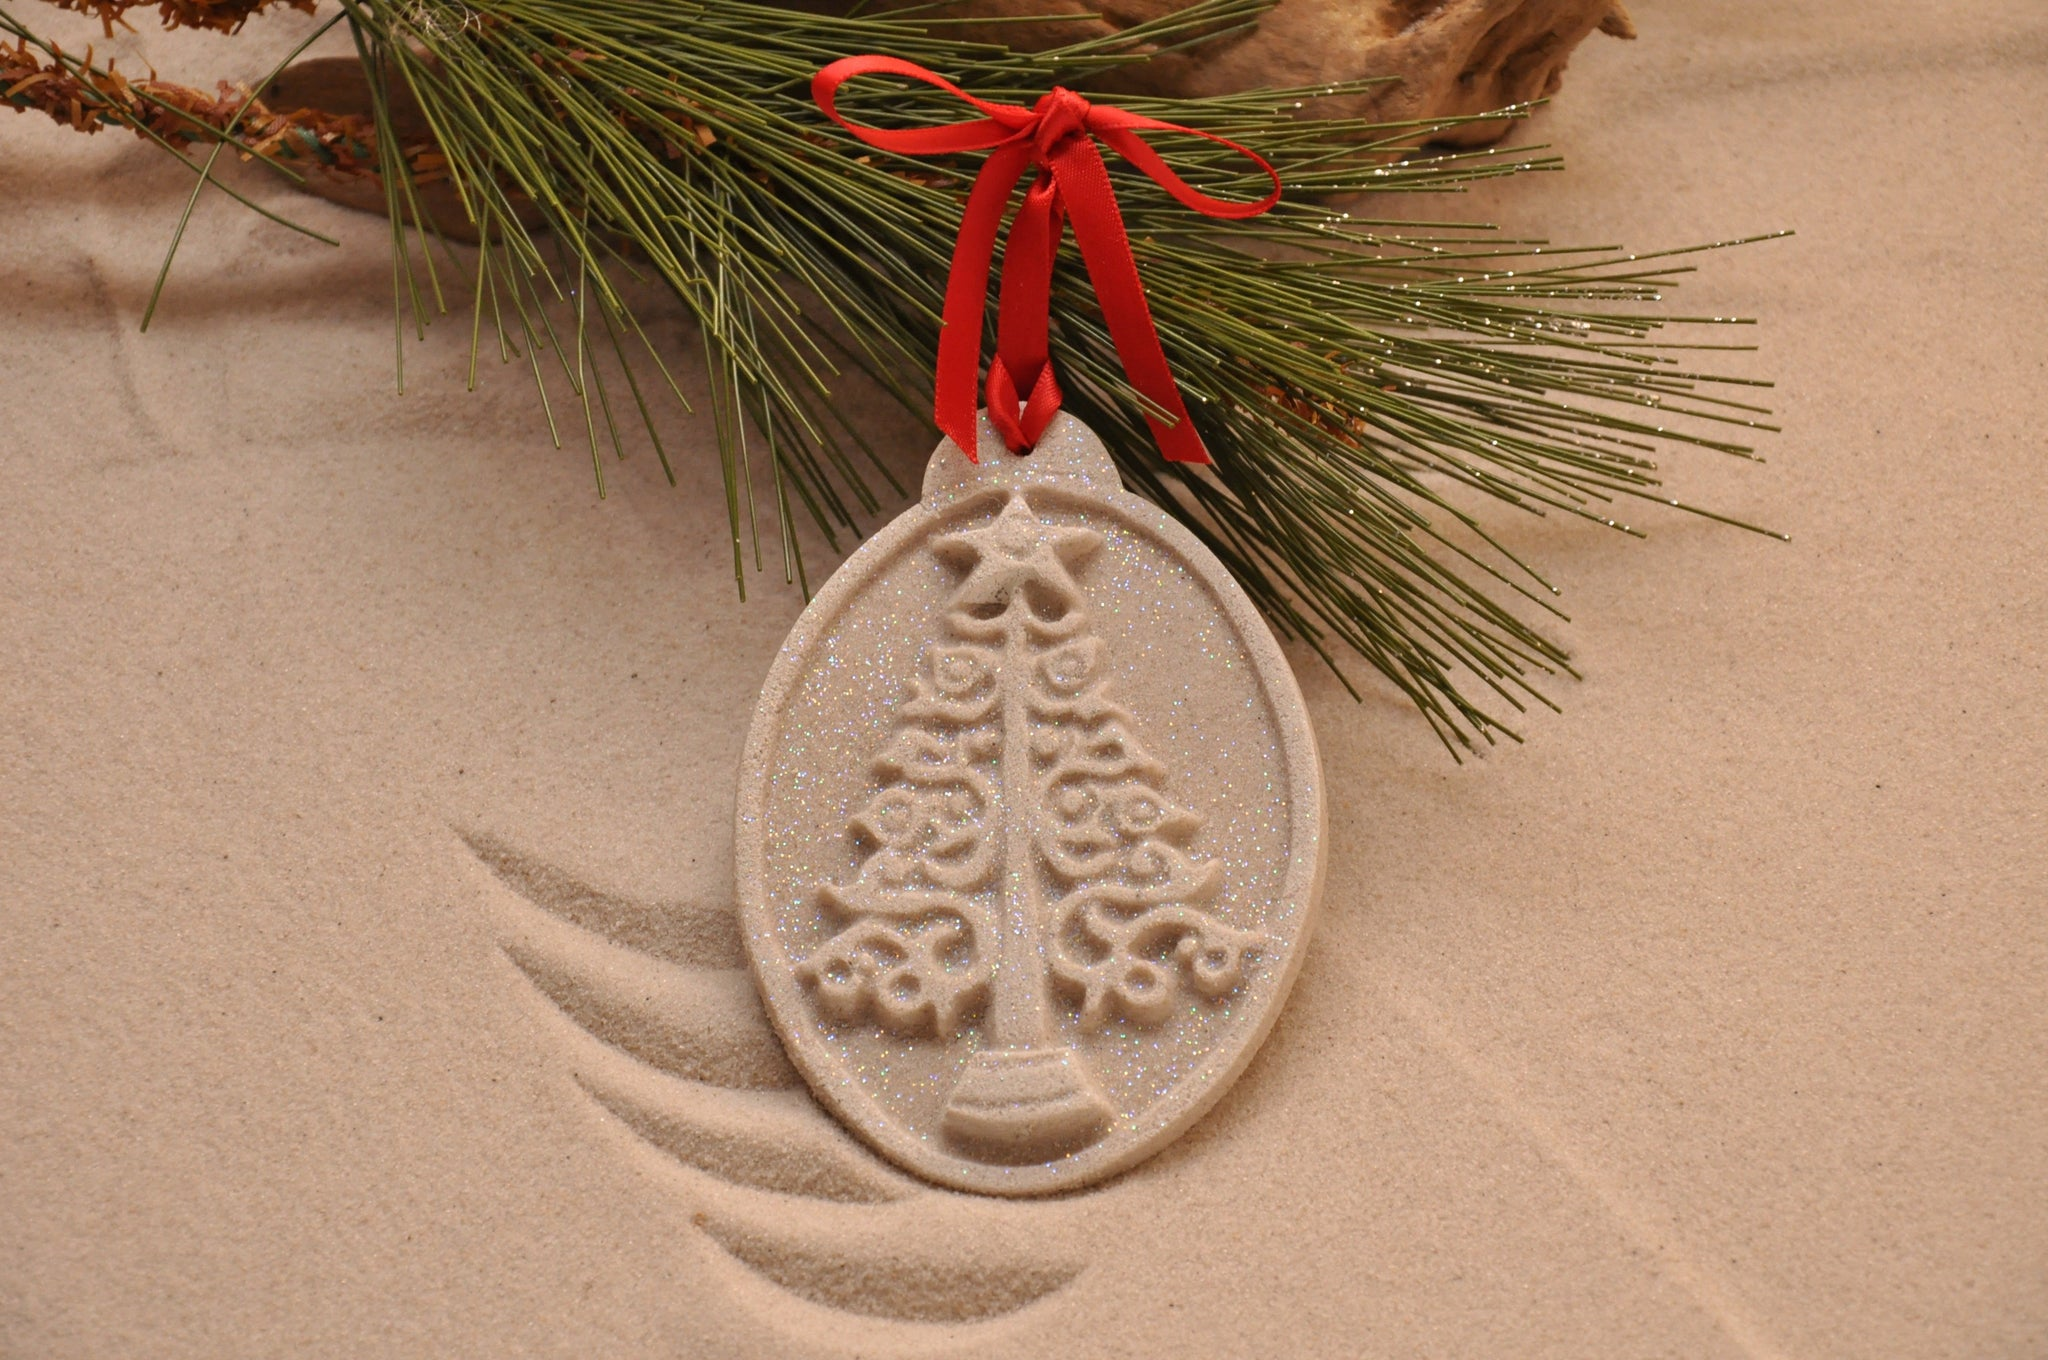 SAND ORNAMENT, CHRISTMAS TREE ORNAMENT, TROPICAL CHRISTMAS DECORATIONS, COASTAL ORNAMENT, SAND ORNAMENT, TROPICAL ORNAMENT, ARENOPHILE, SANTA, CHRISTMAS ORNAMENT, CHRISTMAS TREE